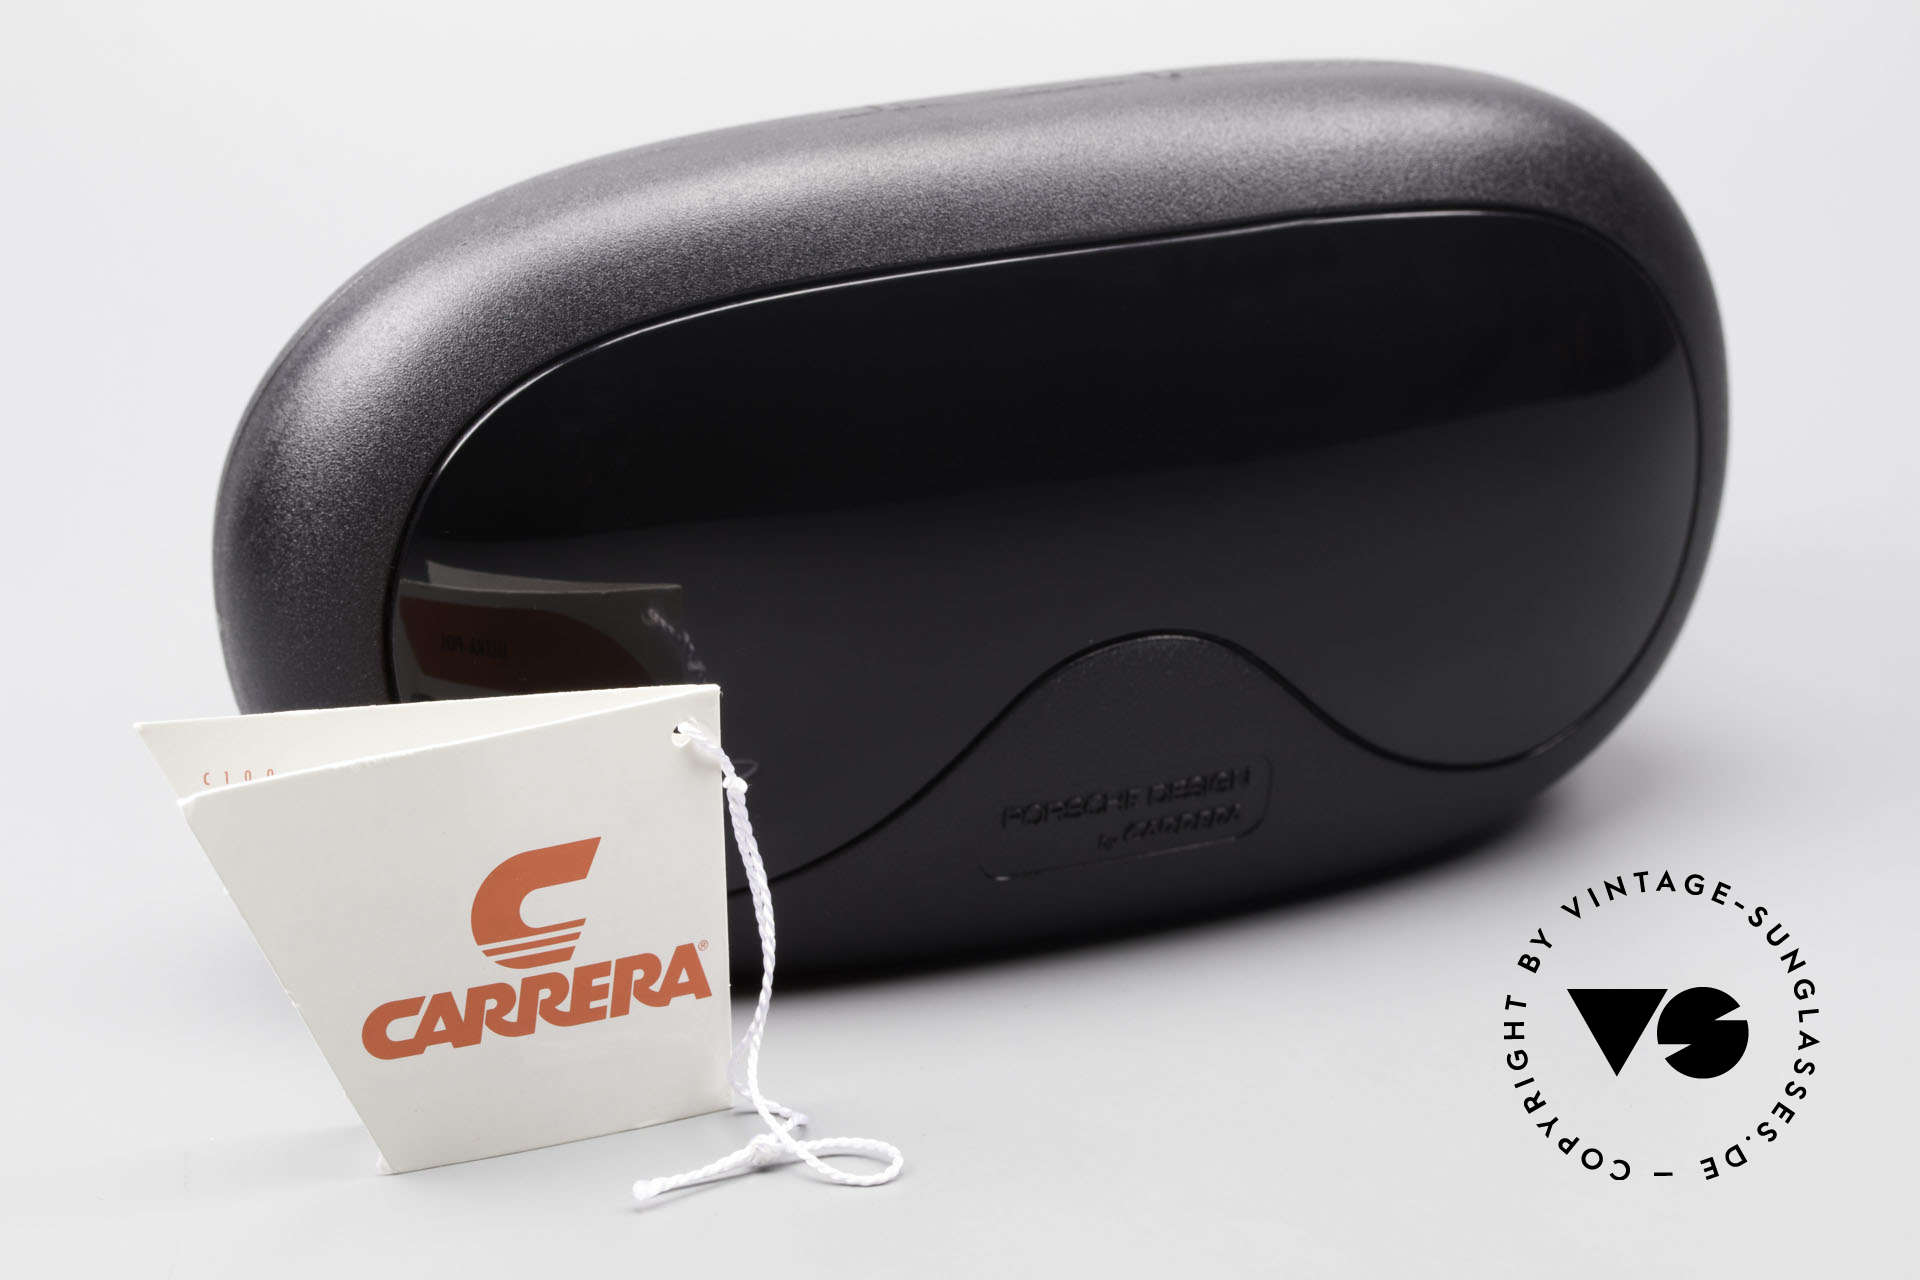 Carrera 5512 Iconic 80's Shades True Vintage, Size: large, Made for Men